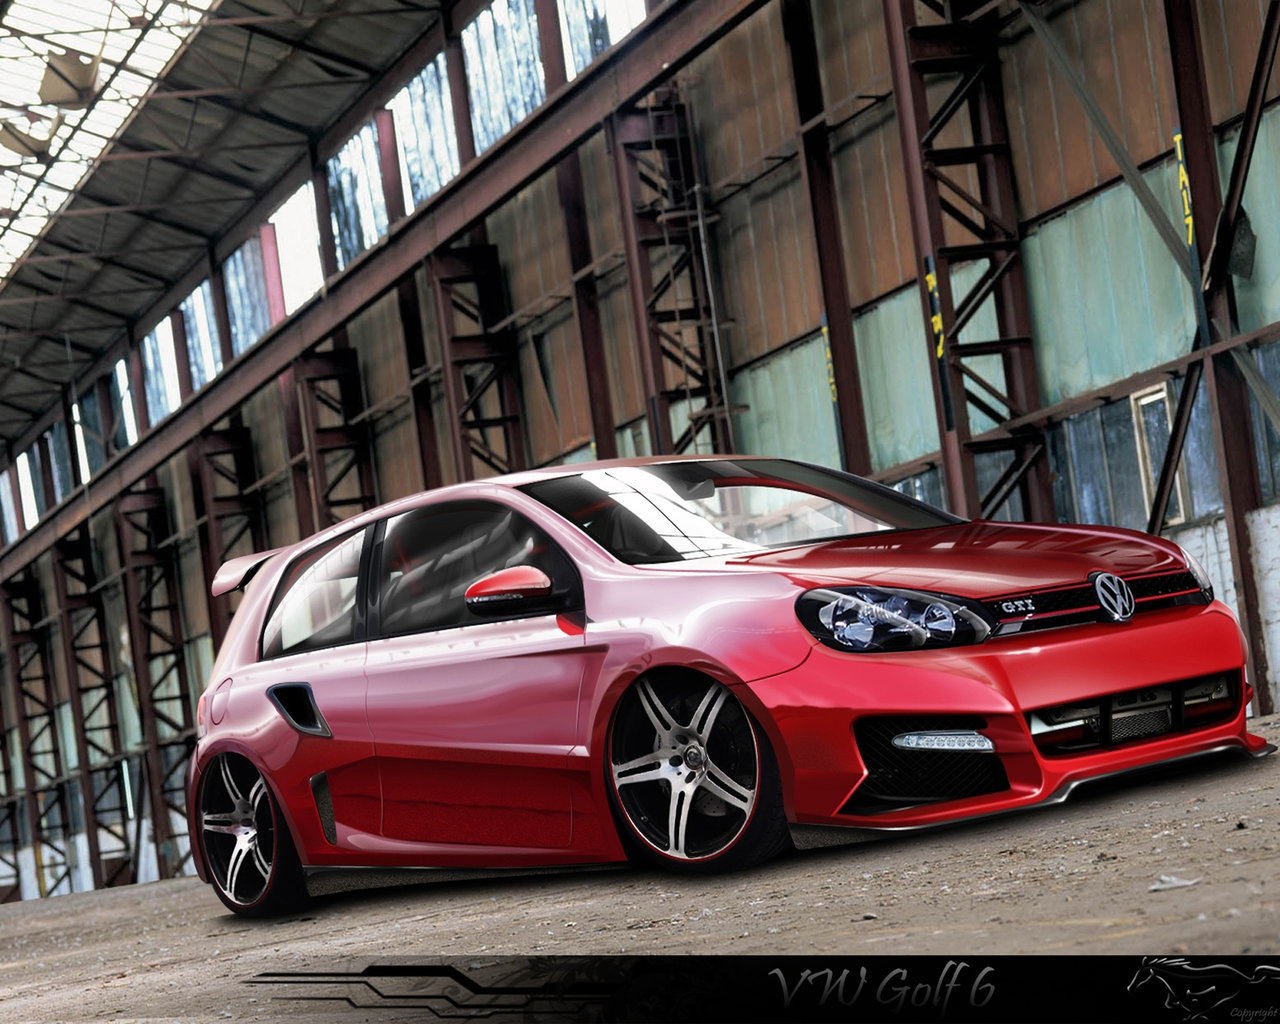 vw golf 6 gti tuning hd wallpapers hd backgrounds. Black Bedroom Furniture Sets. Home Design Ideas